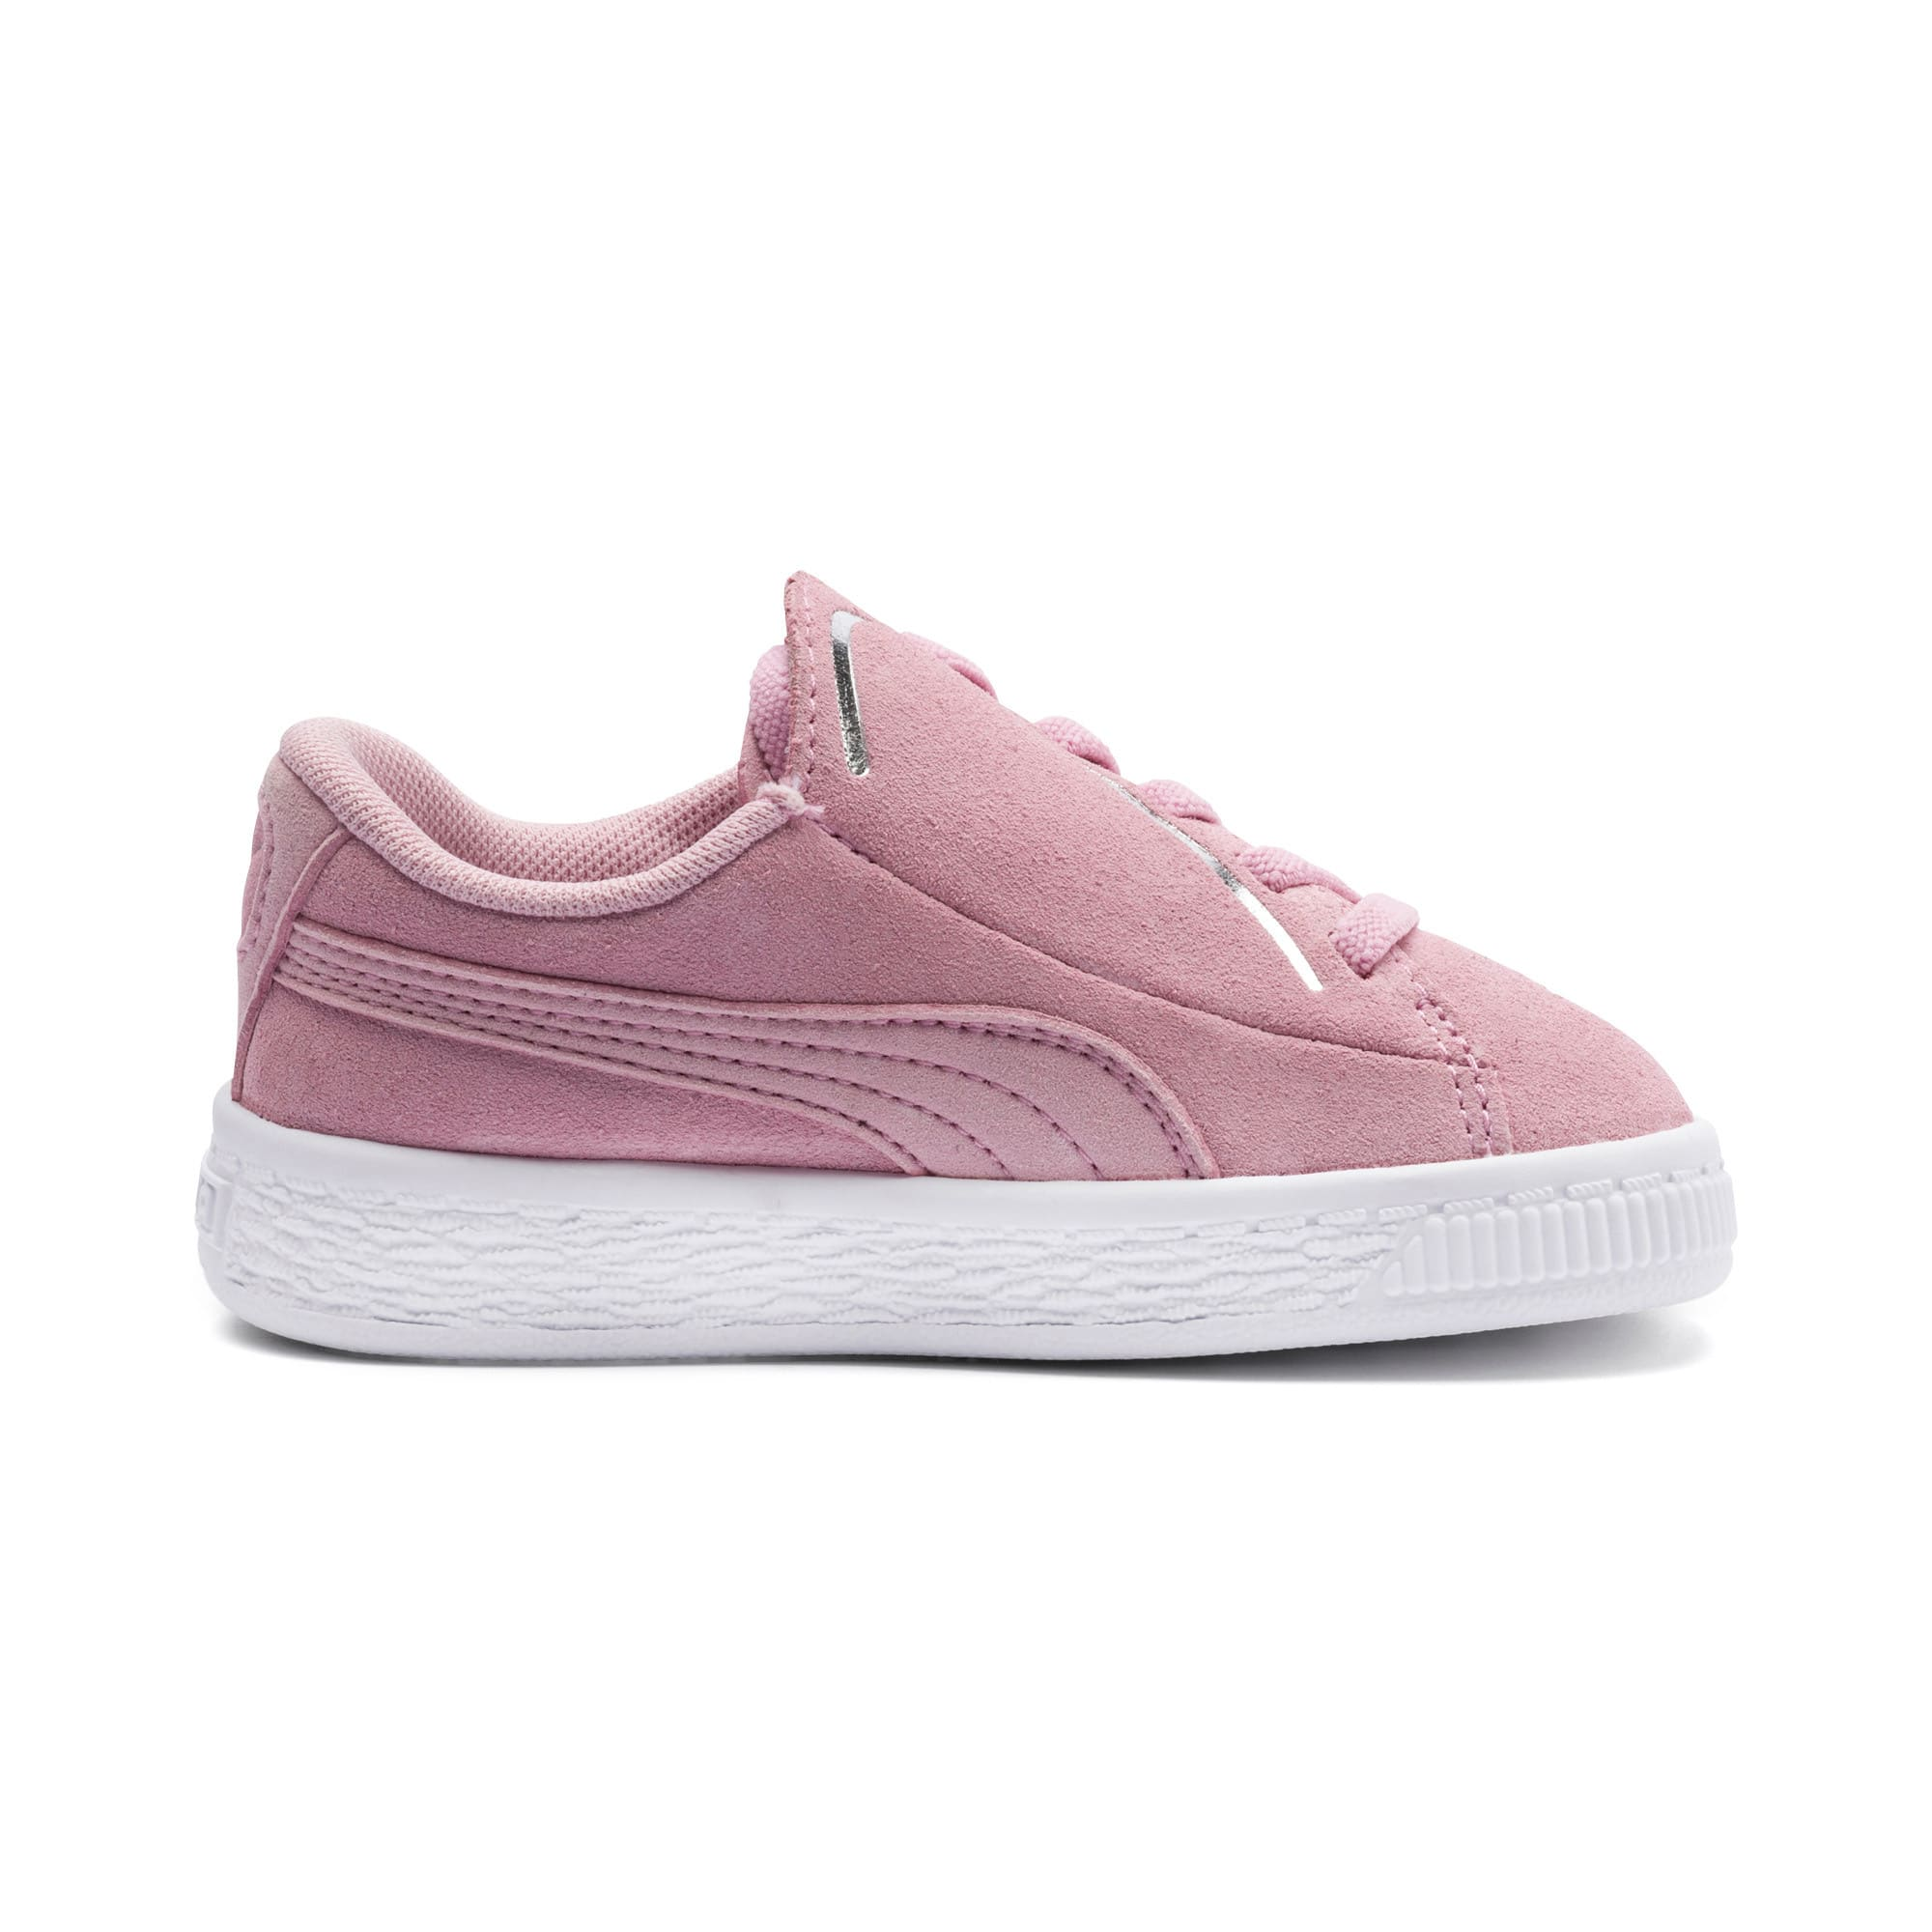 Thumbnail 5 of Suede Crush AC Toddler Shoes, Pale Pink-Puma Silver, medium